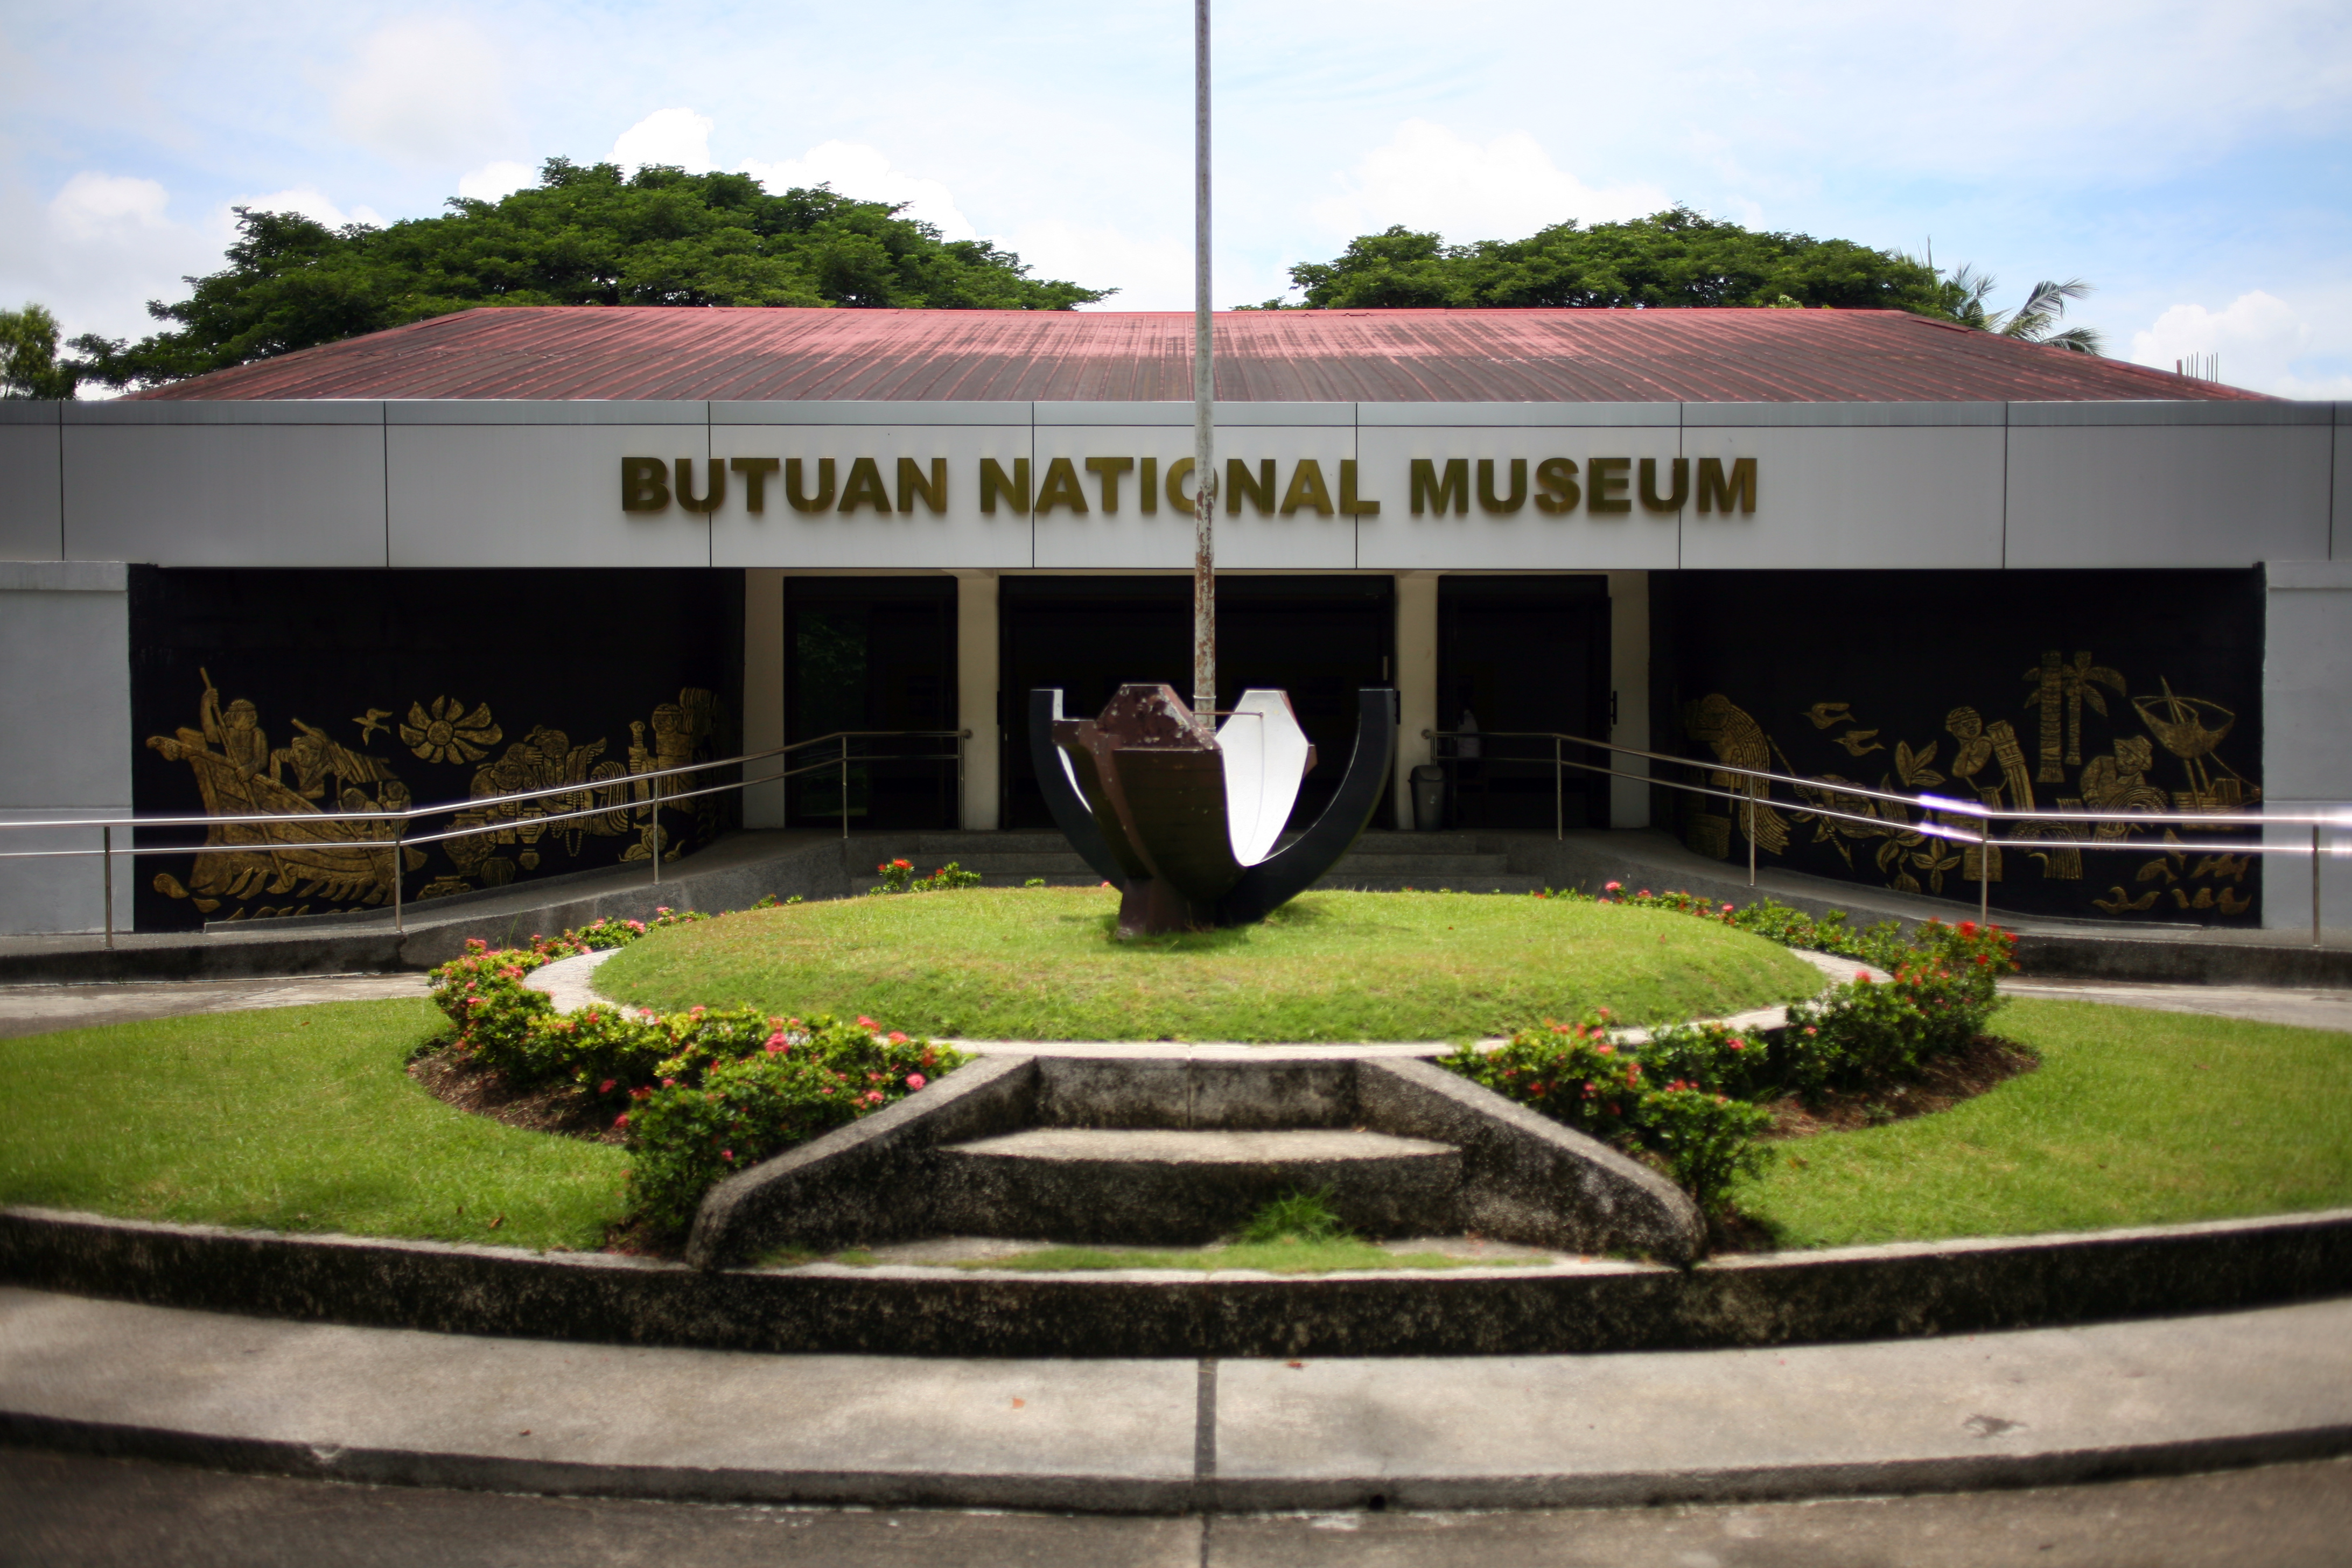 butuan city men Gay bar in butuan city within the most full database on gay bar in butuan city (other cities in philippines) found 0, updated on 2018.